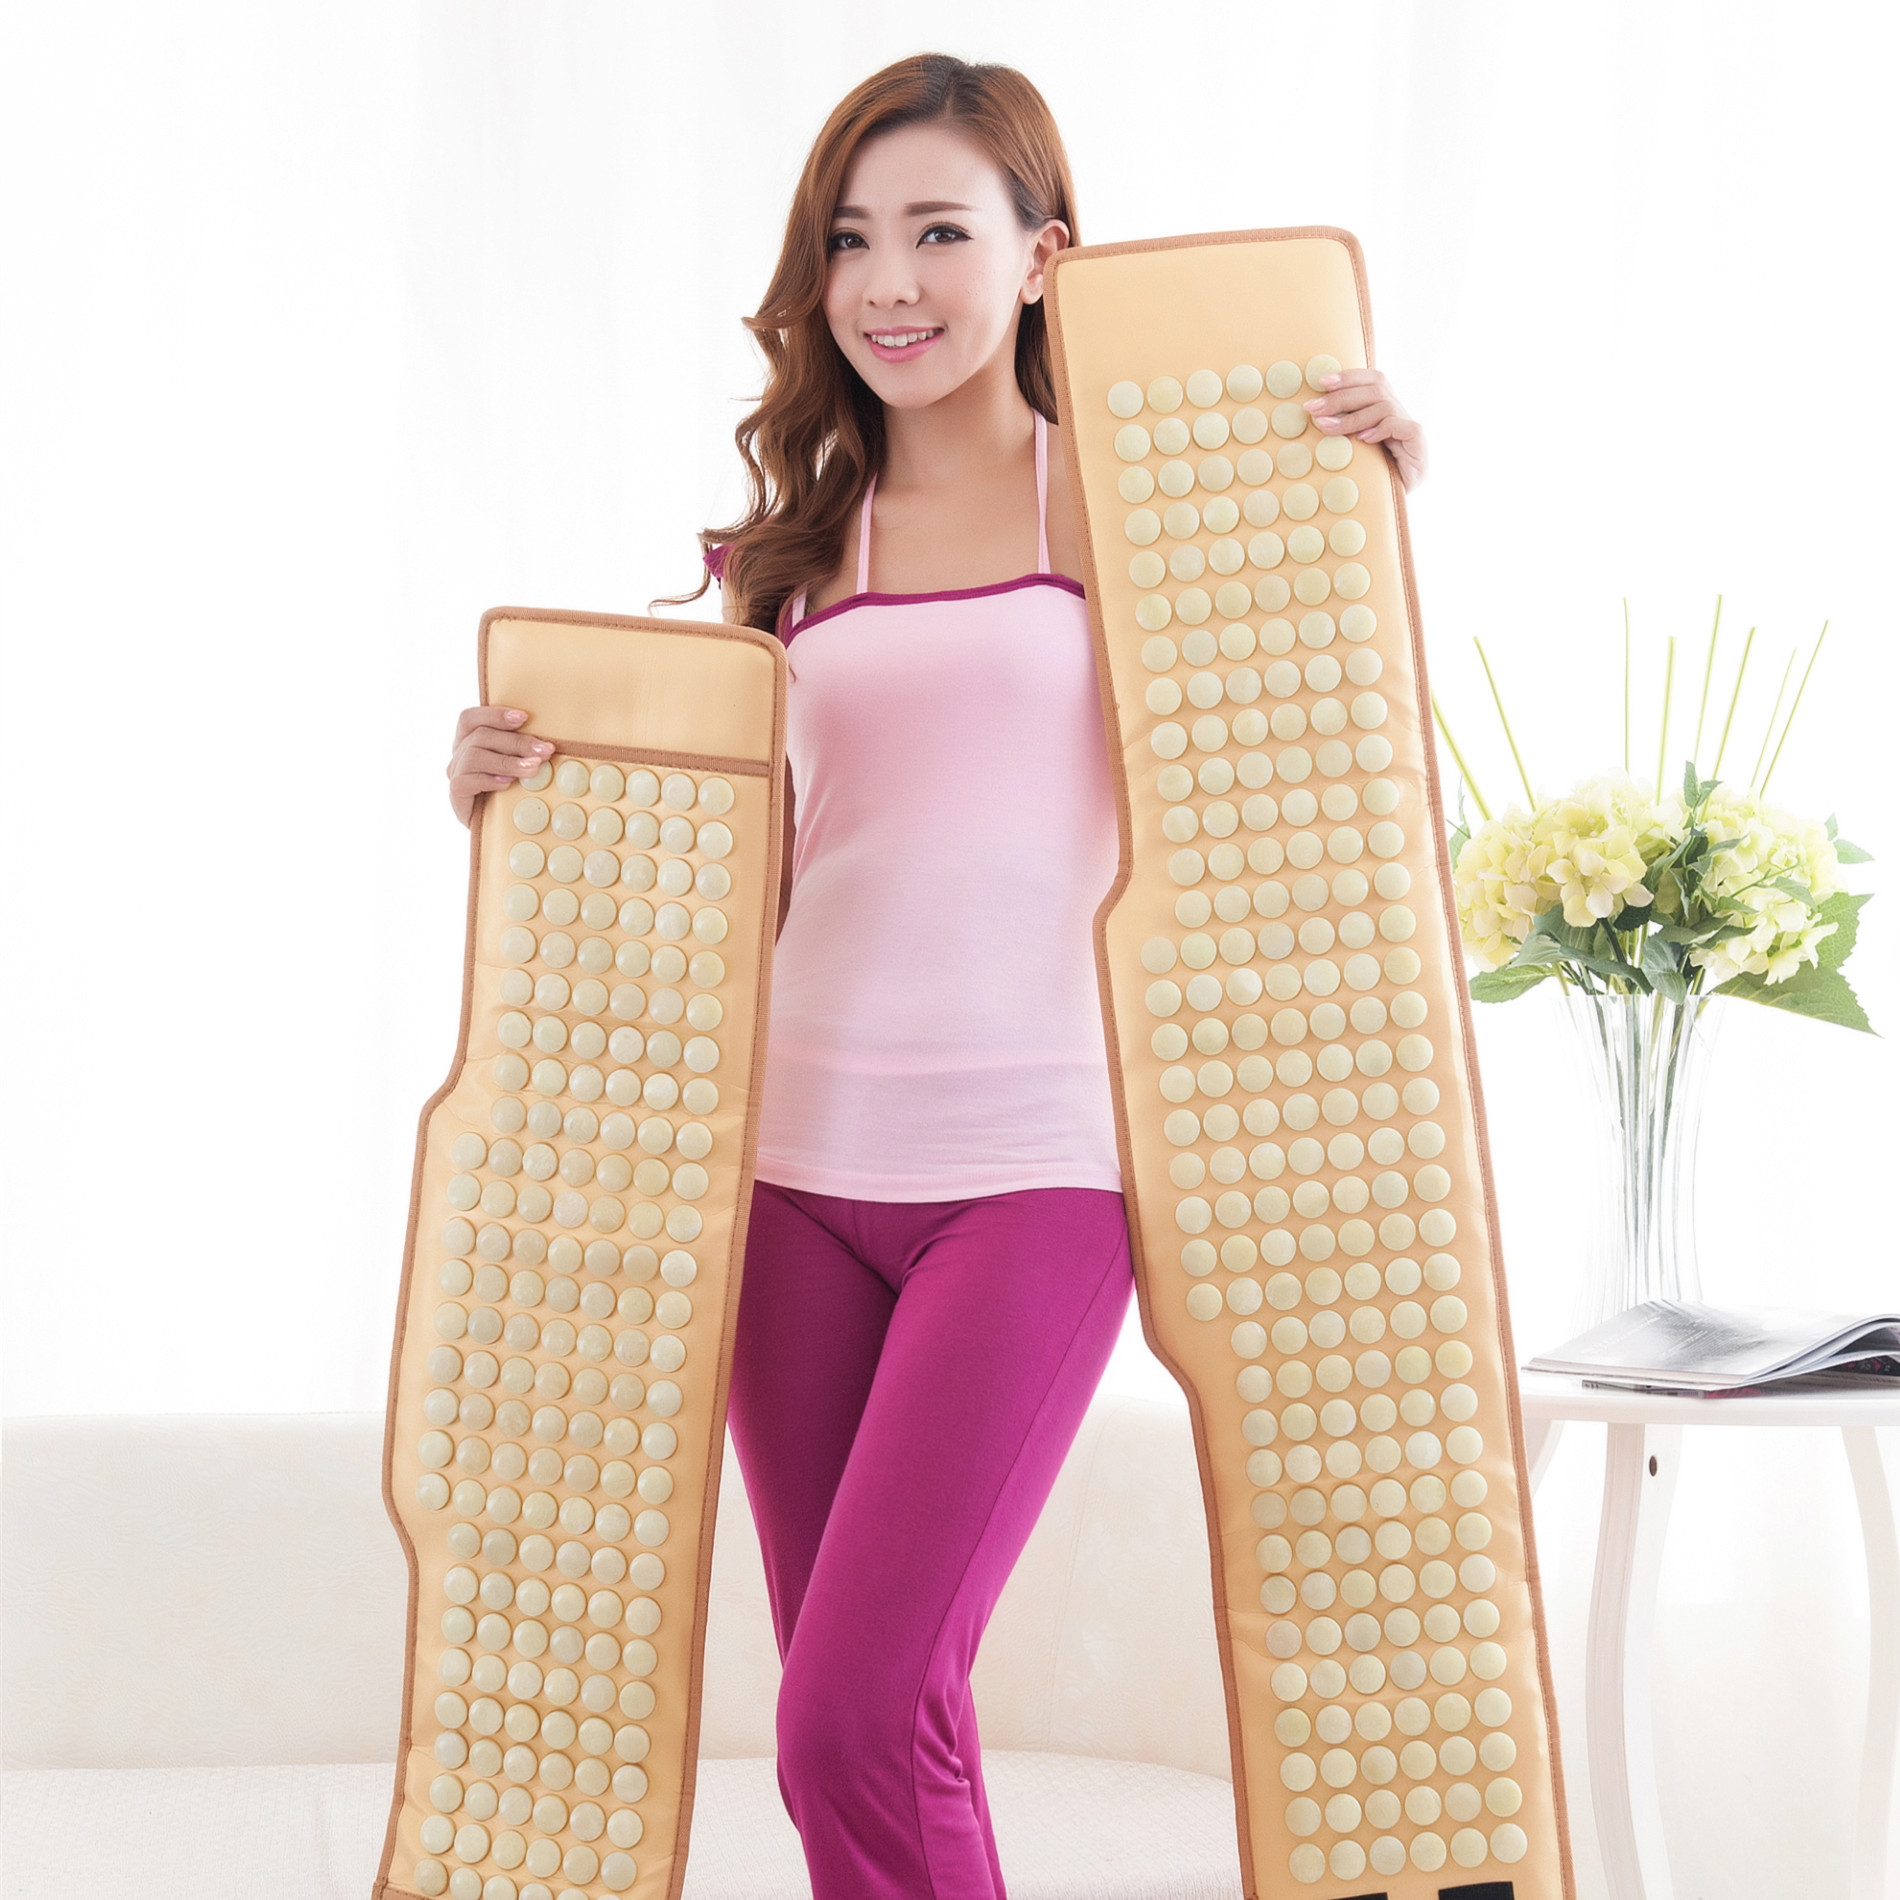 Electric heating health care massage therapy and lumbar physiotherapy infrared hyperthermia waist pain jade into the warm house